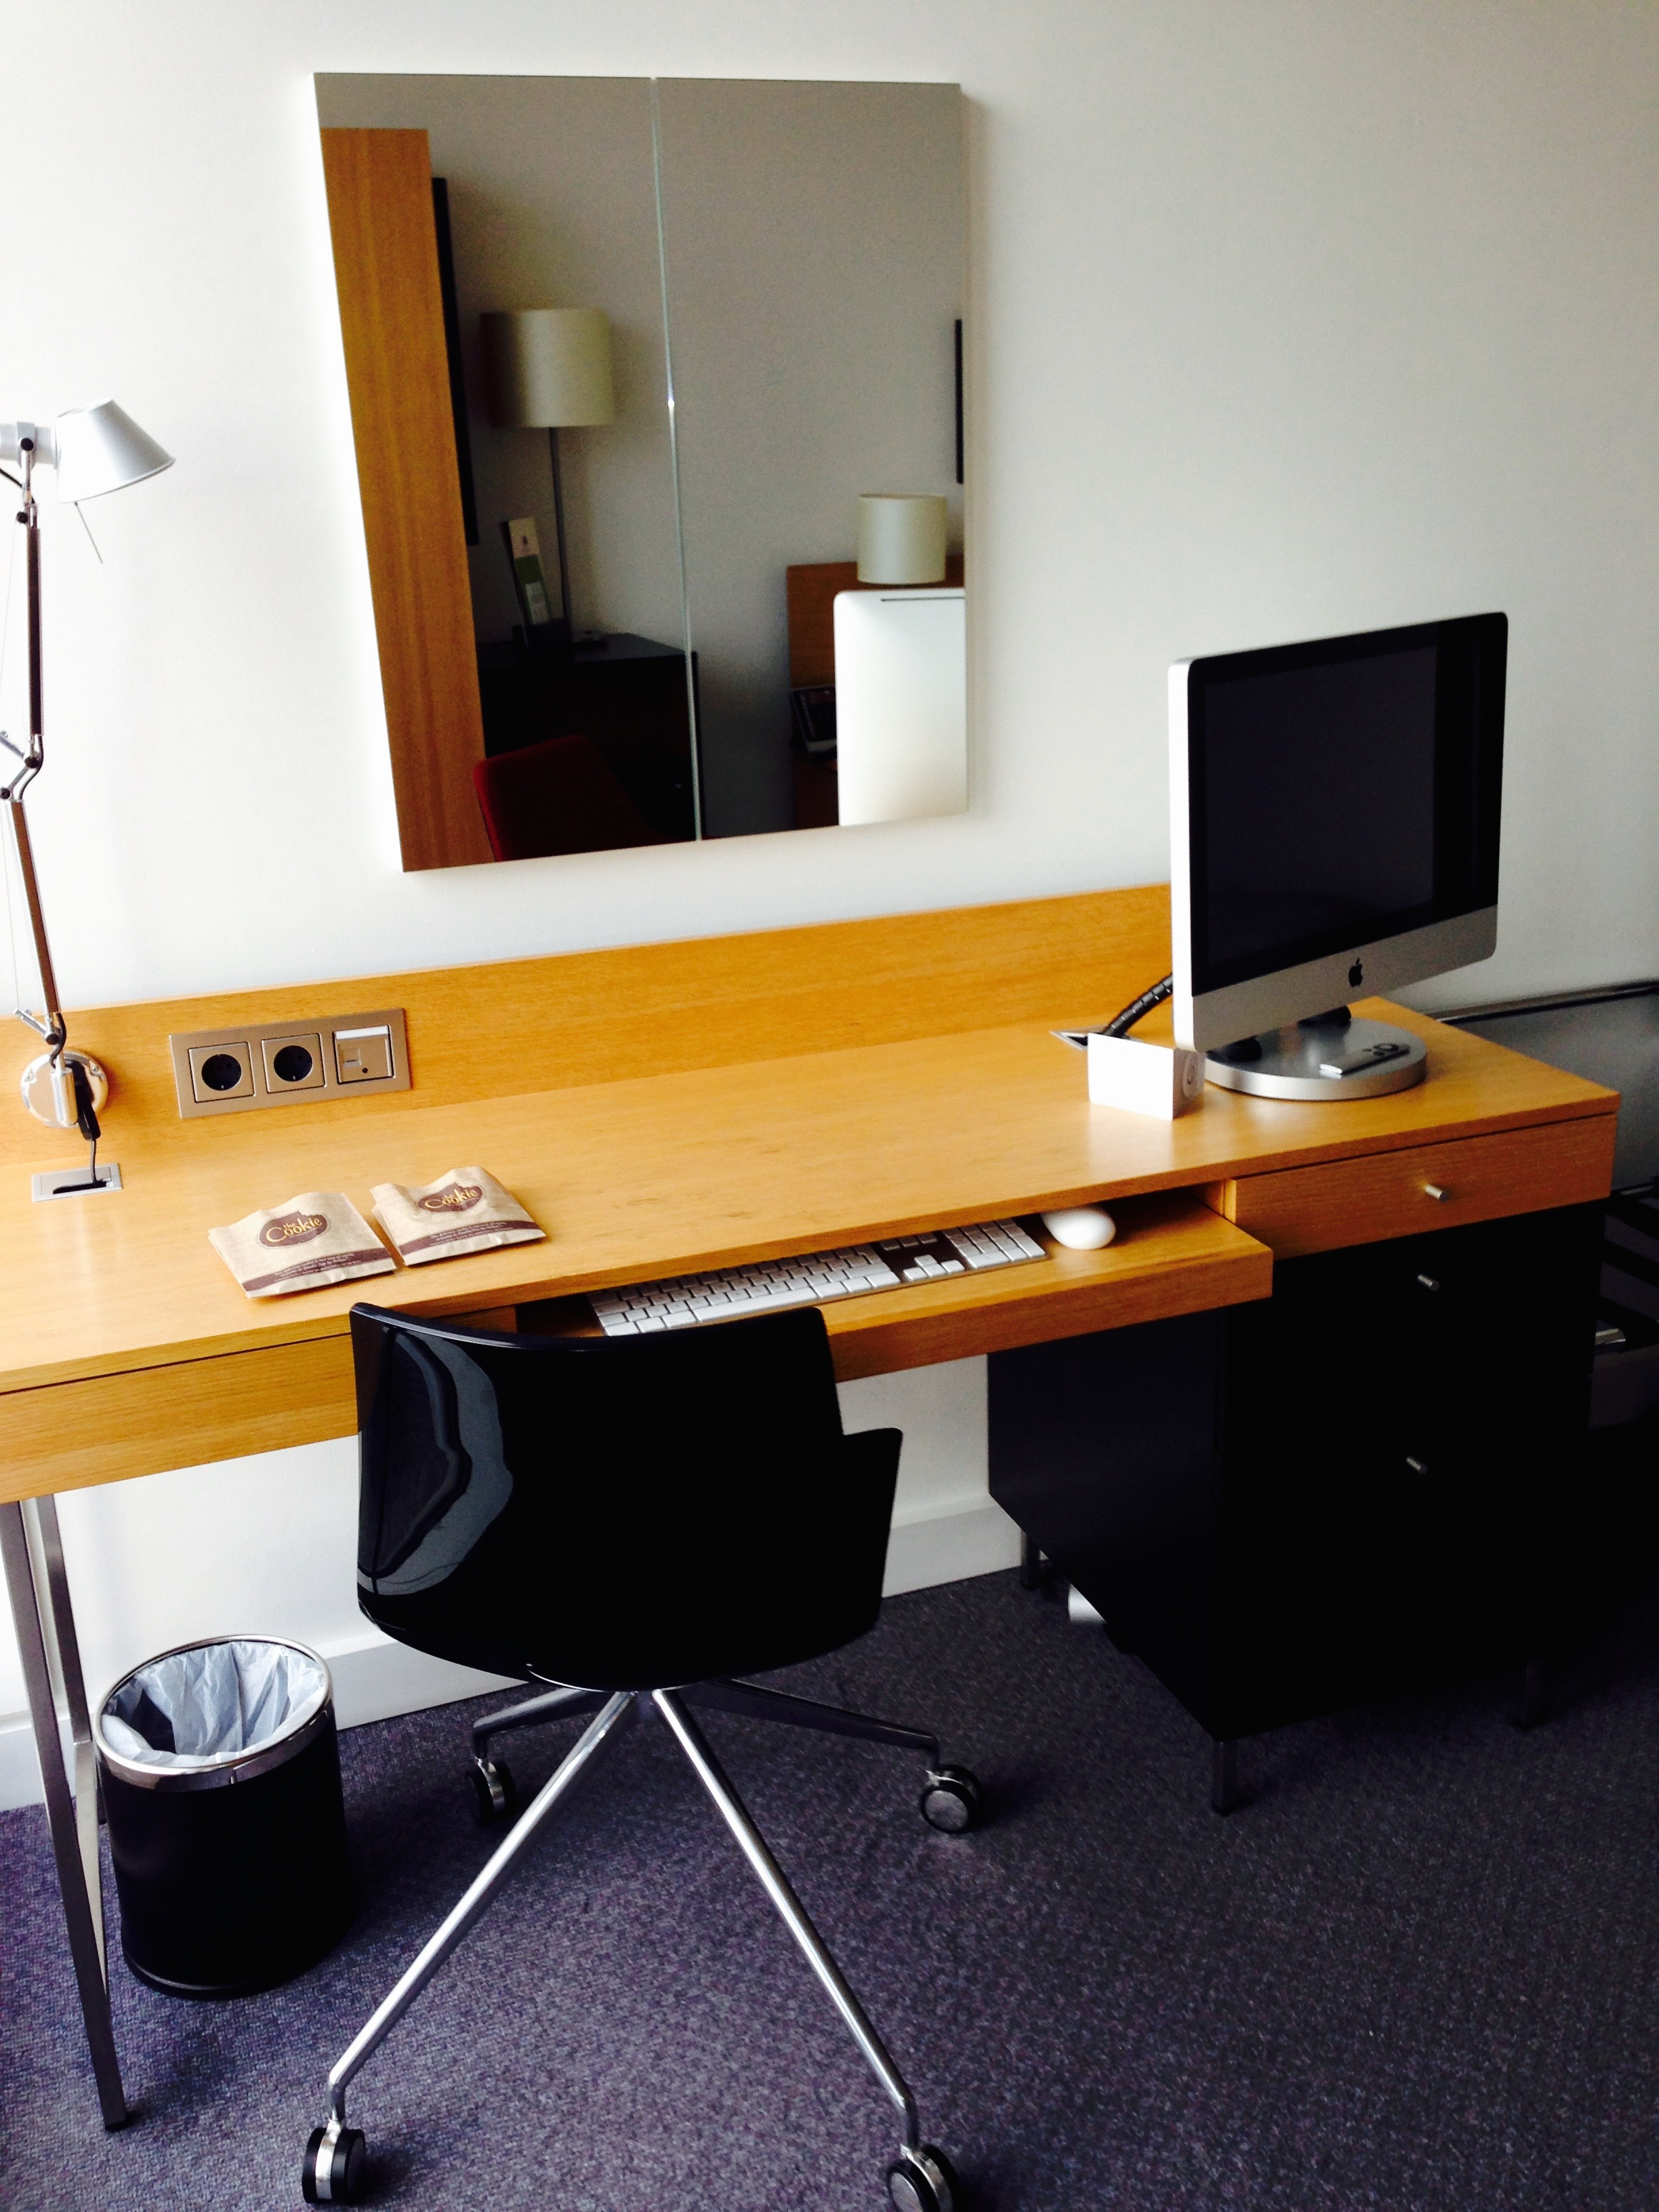 Doubletree by Hilton Amsterdam Centraal Station Desk and Work Area